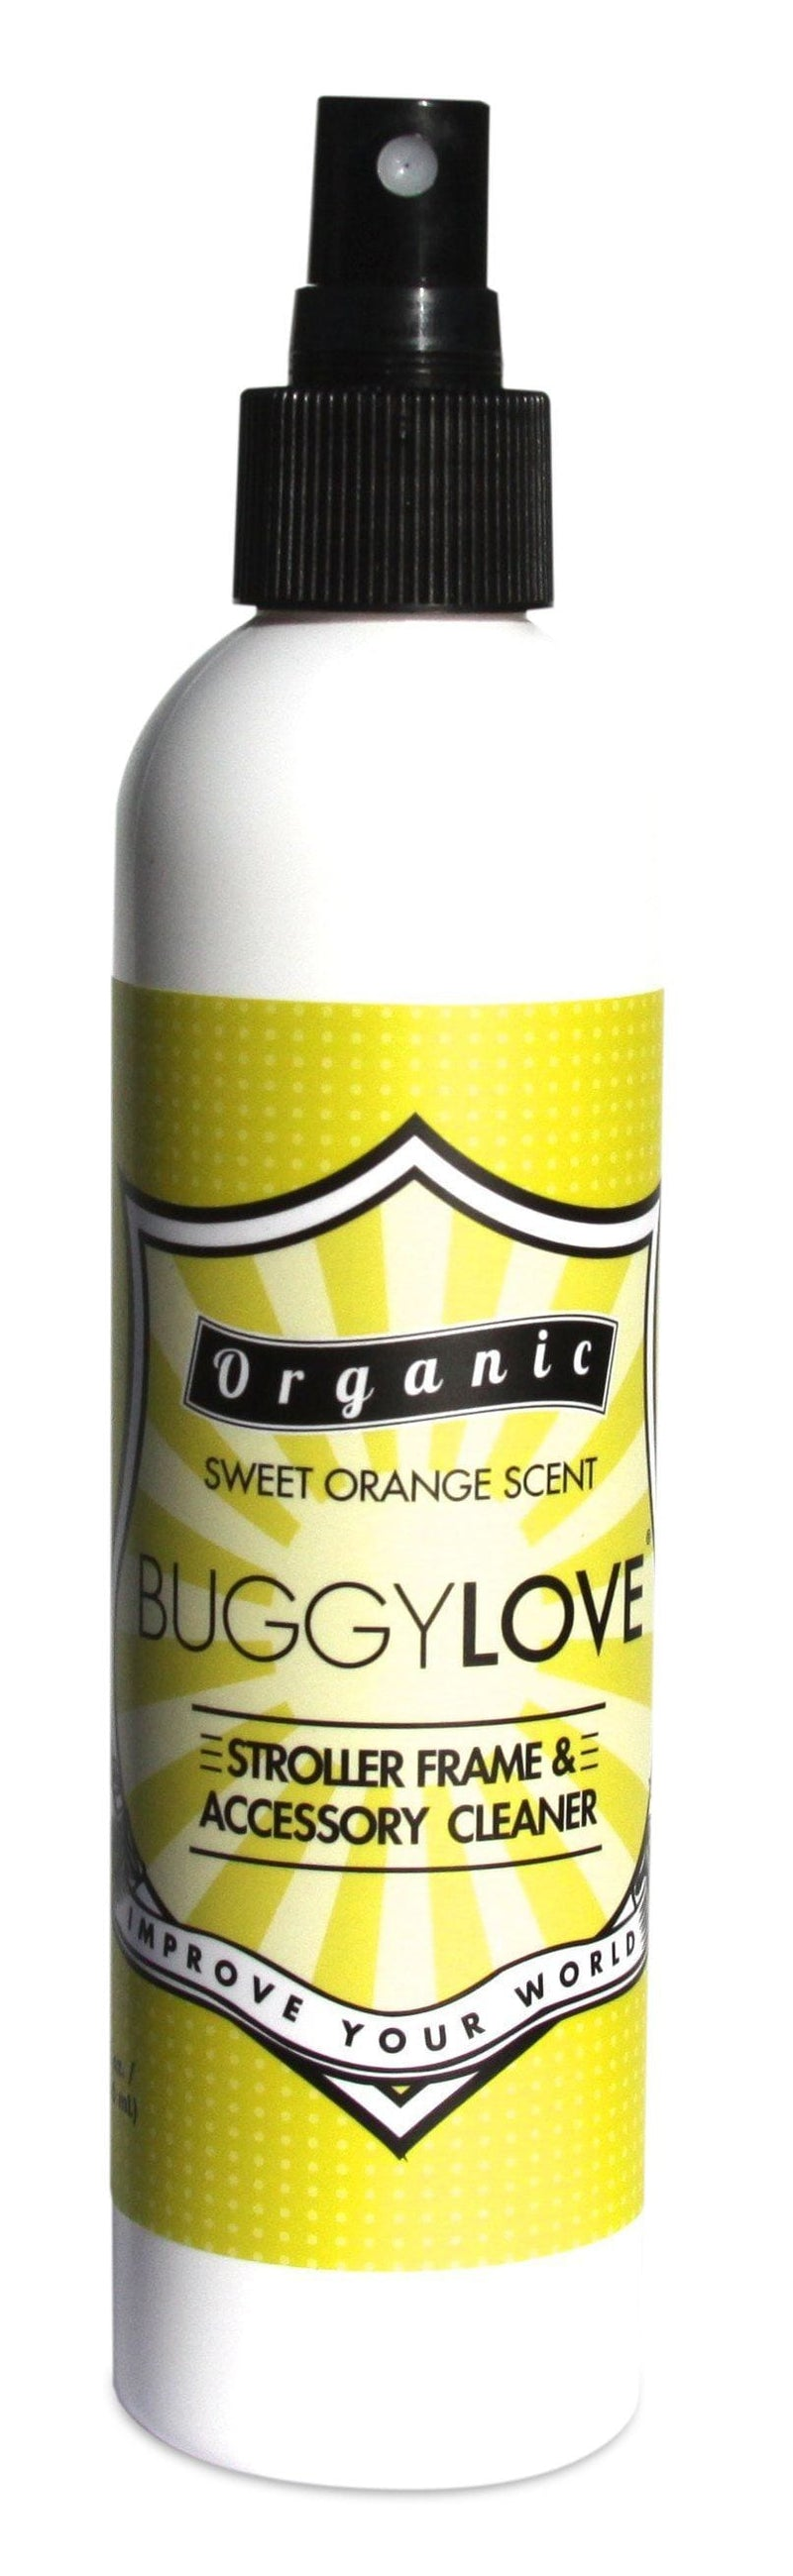 Buggy Love Organic Stroller Frame & Accessory Cleaner